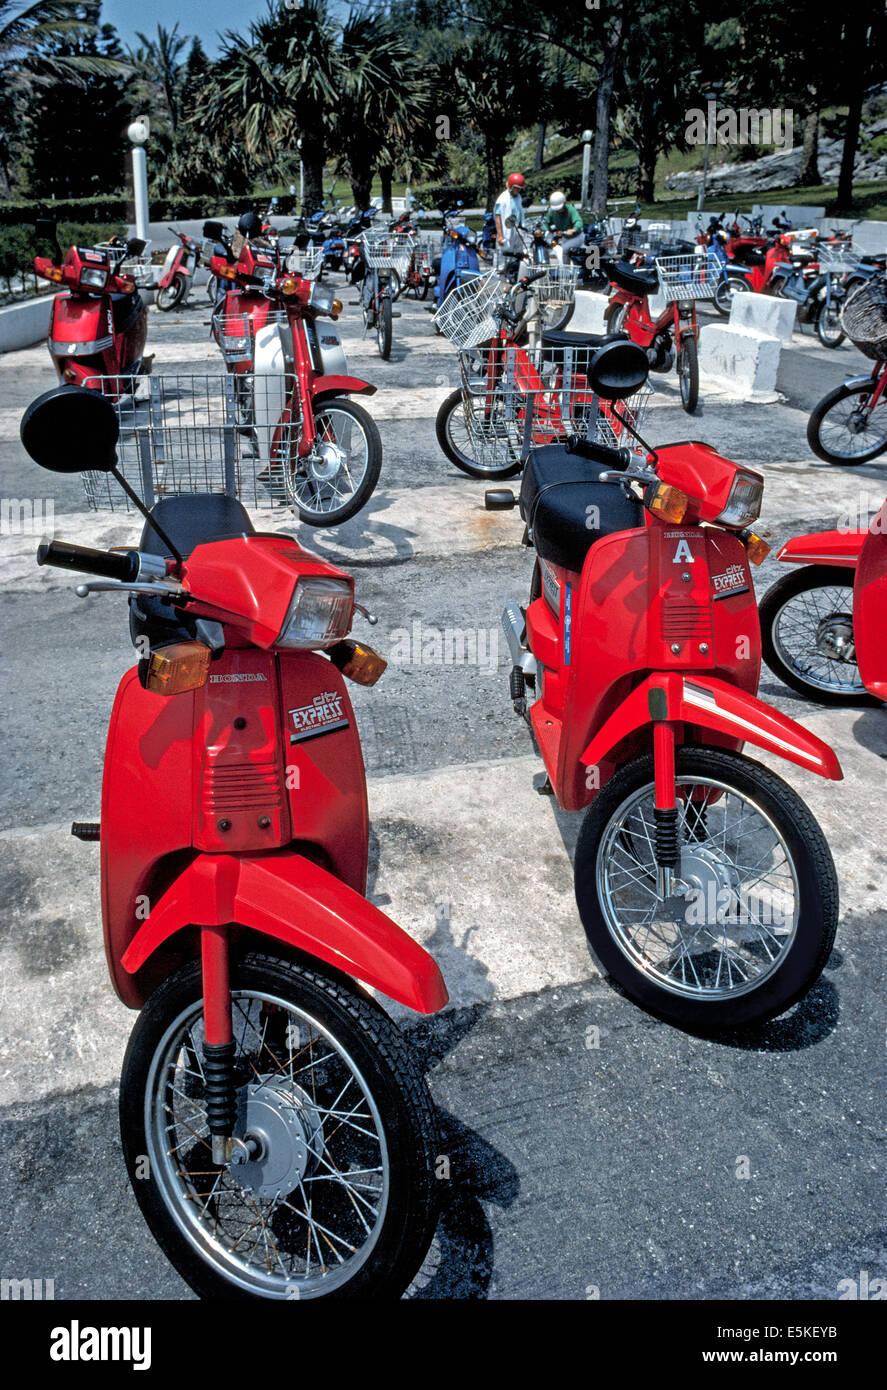 Many visitors rent motor scooters (mopeds) to travel around Bermuda, a British island territory popular for vacations - Stock Image